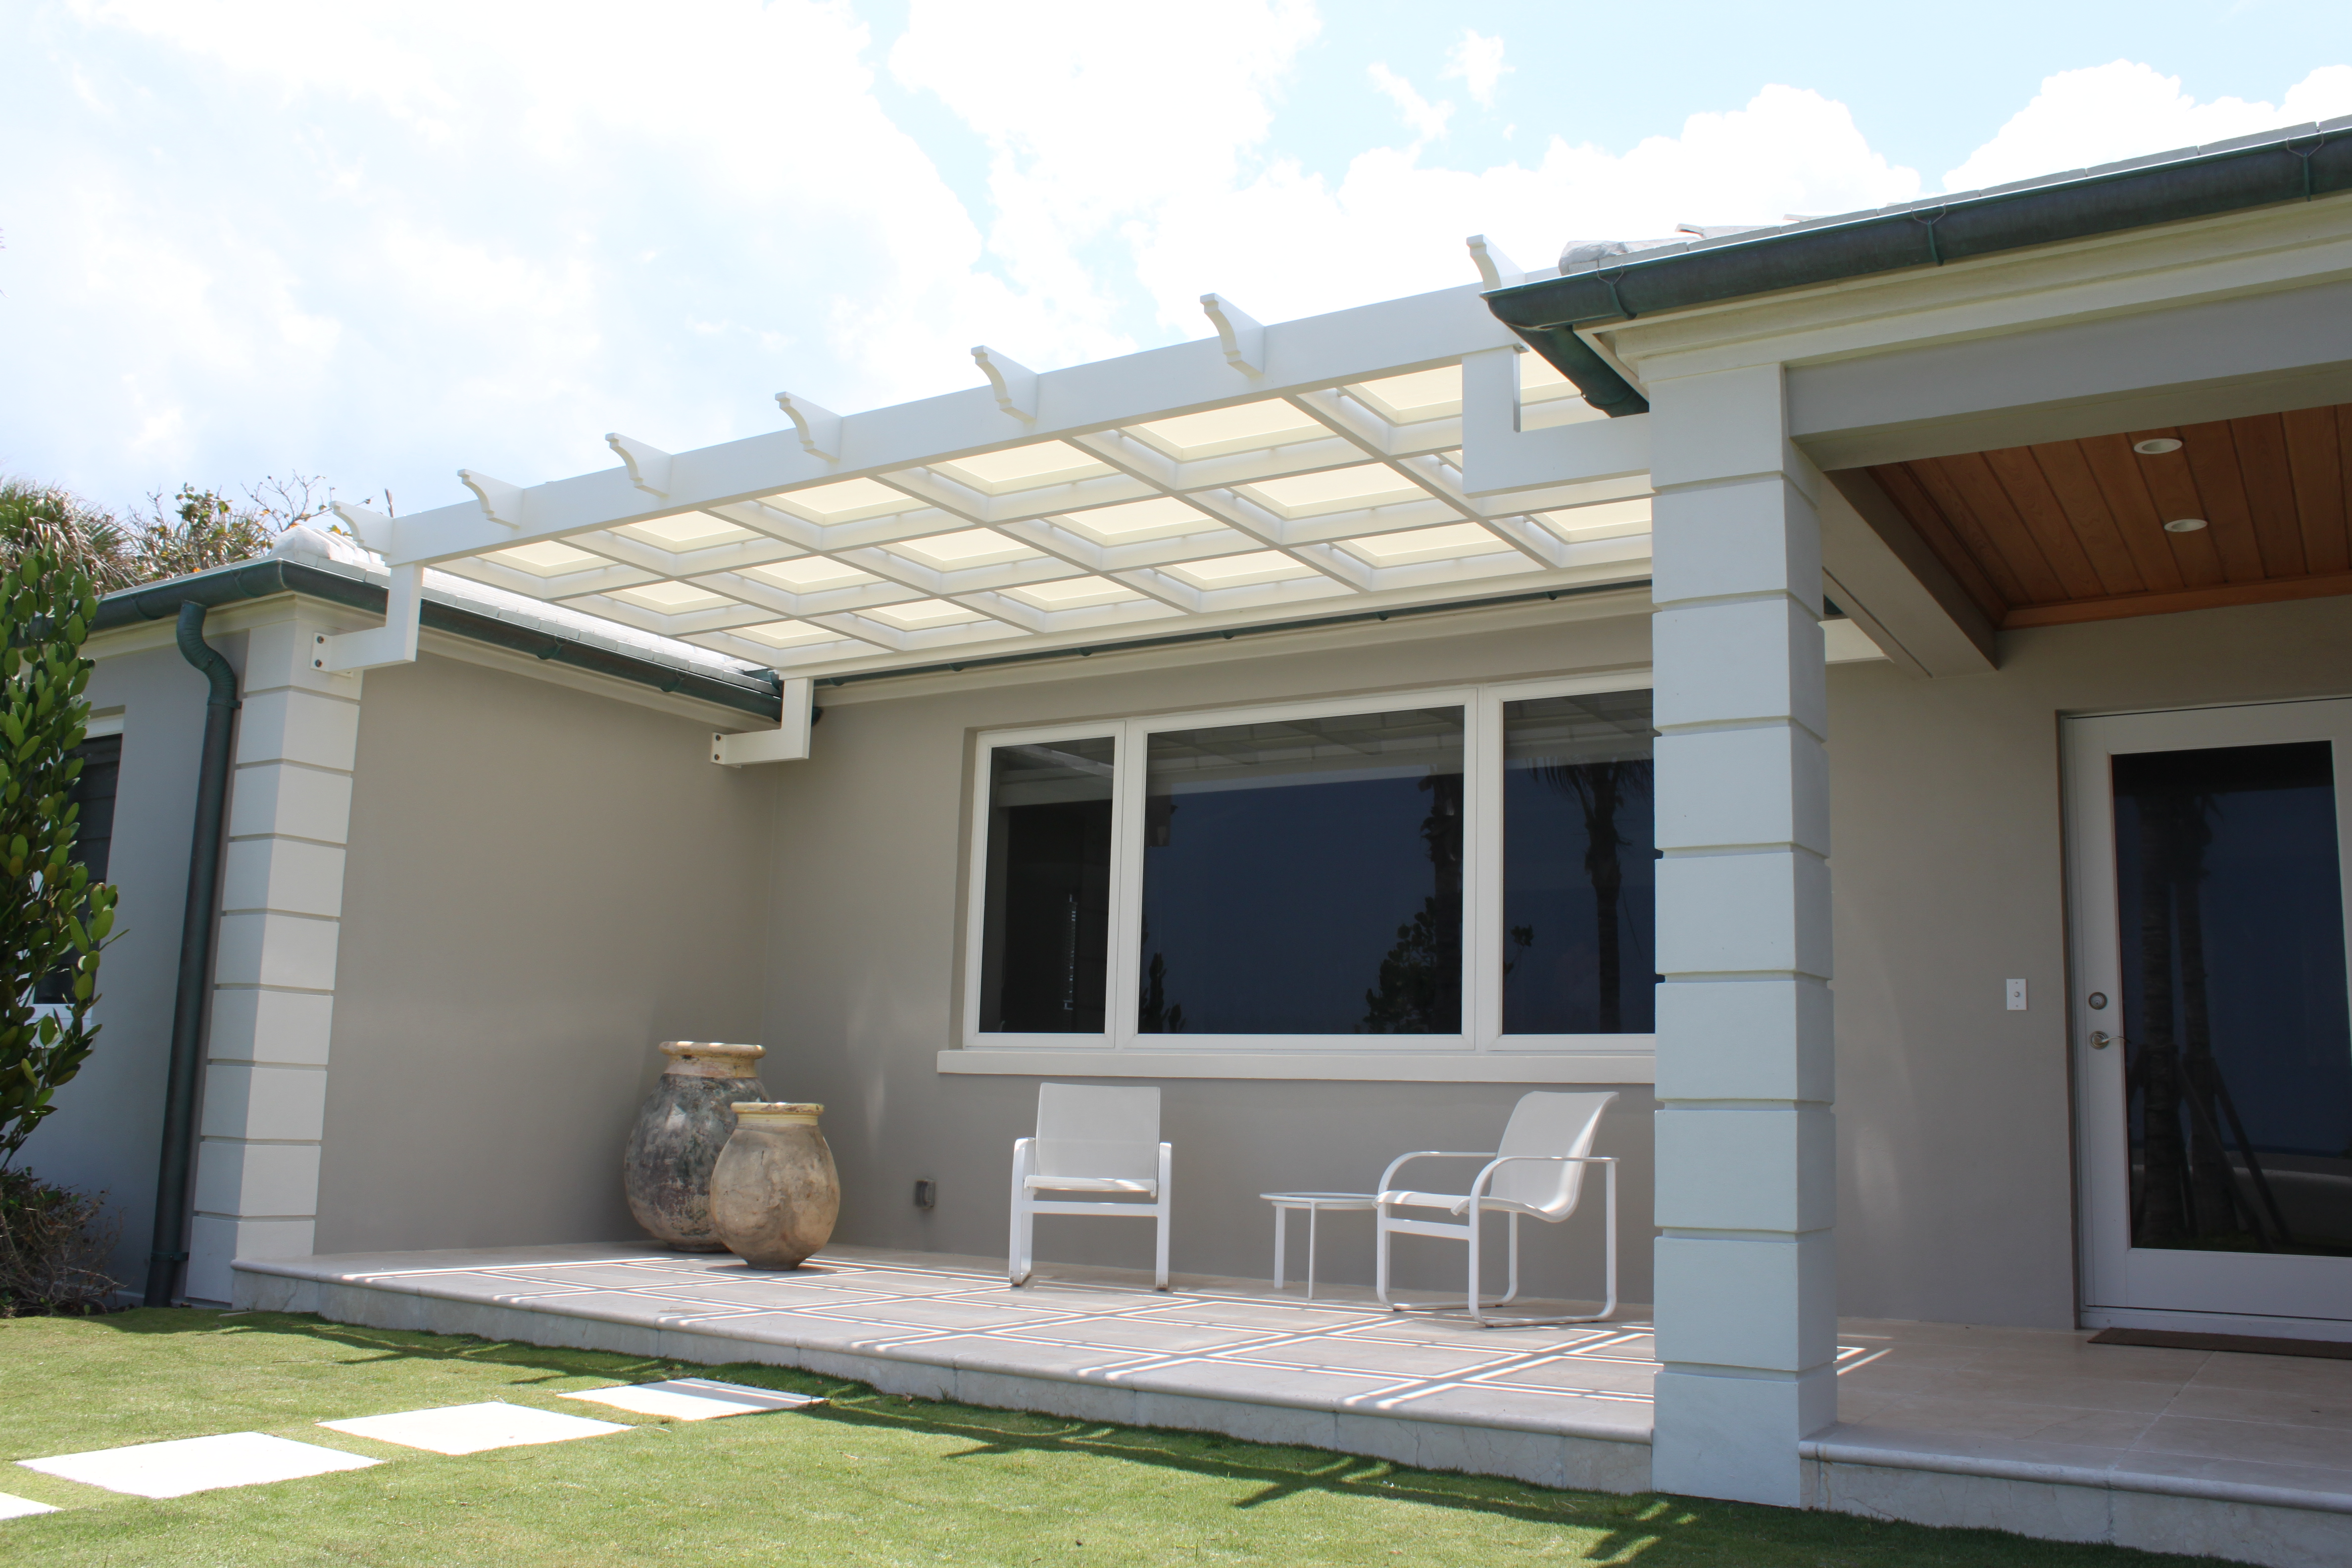 awning gallery ideas denver best company metal kedry awnings